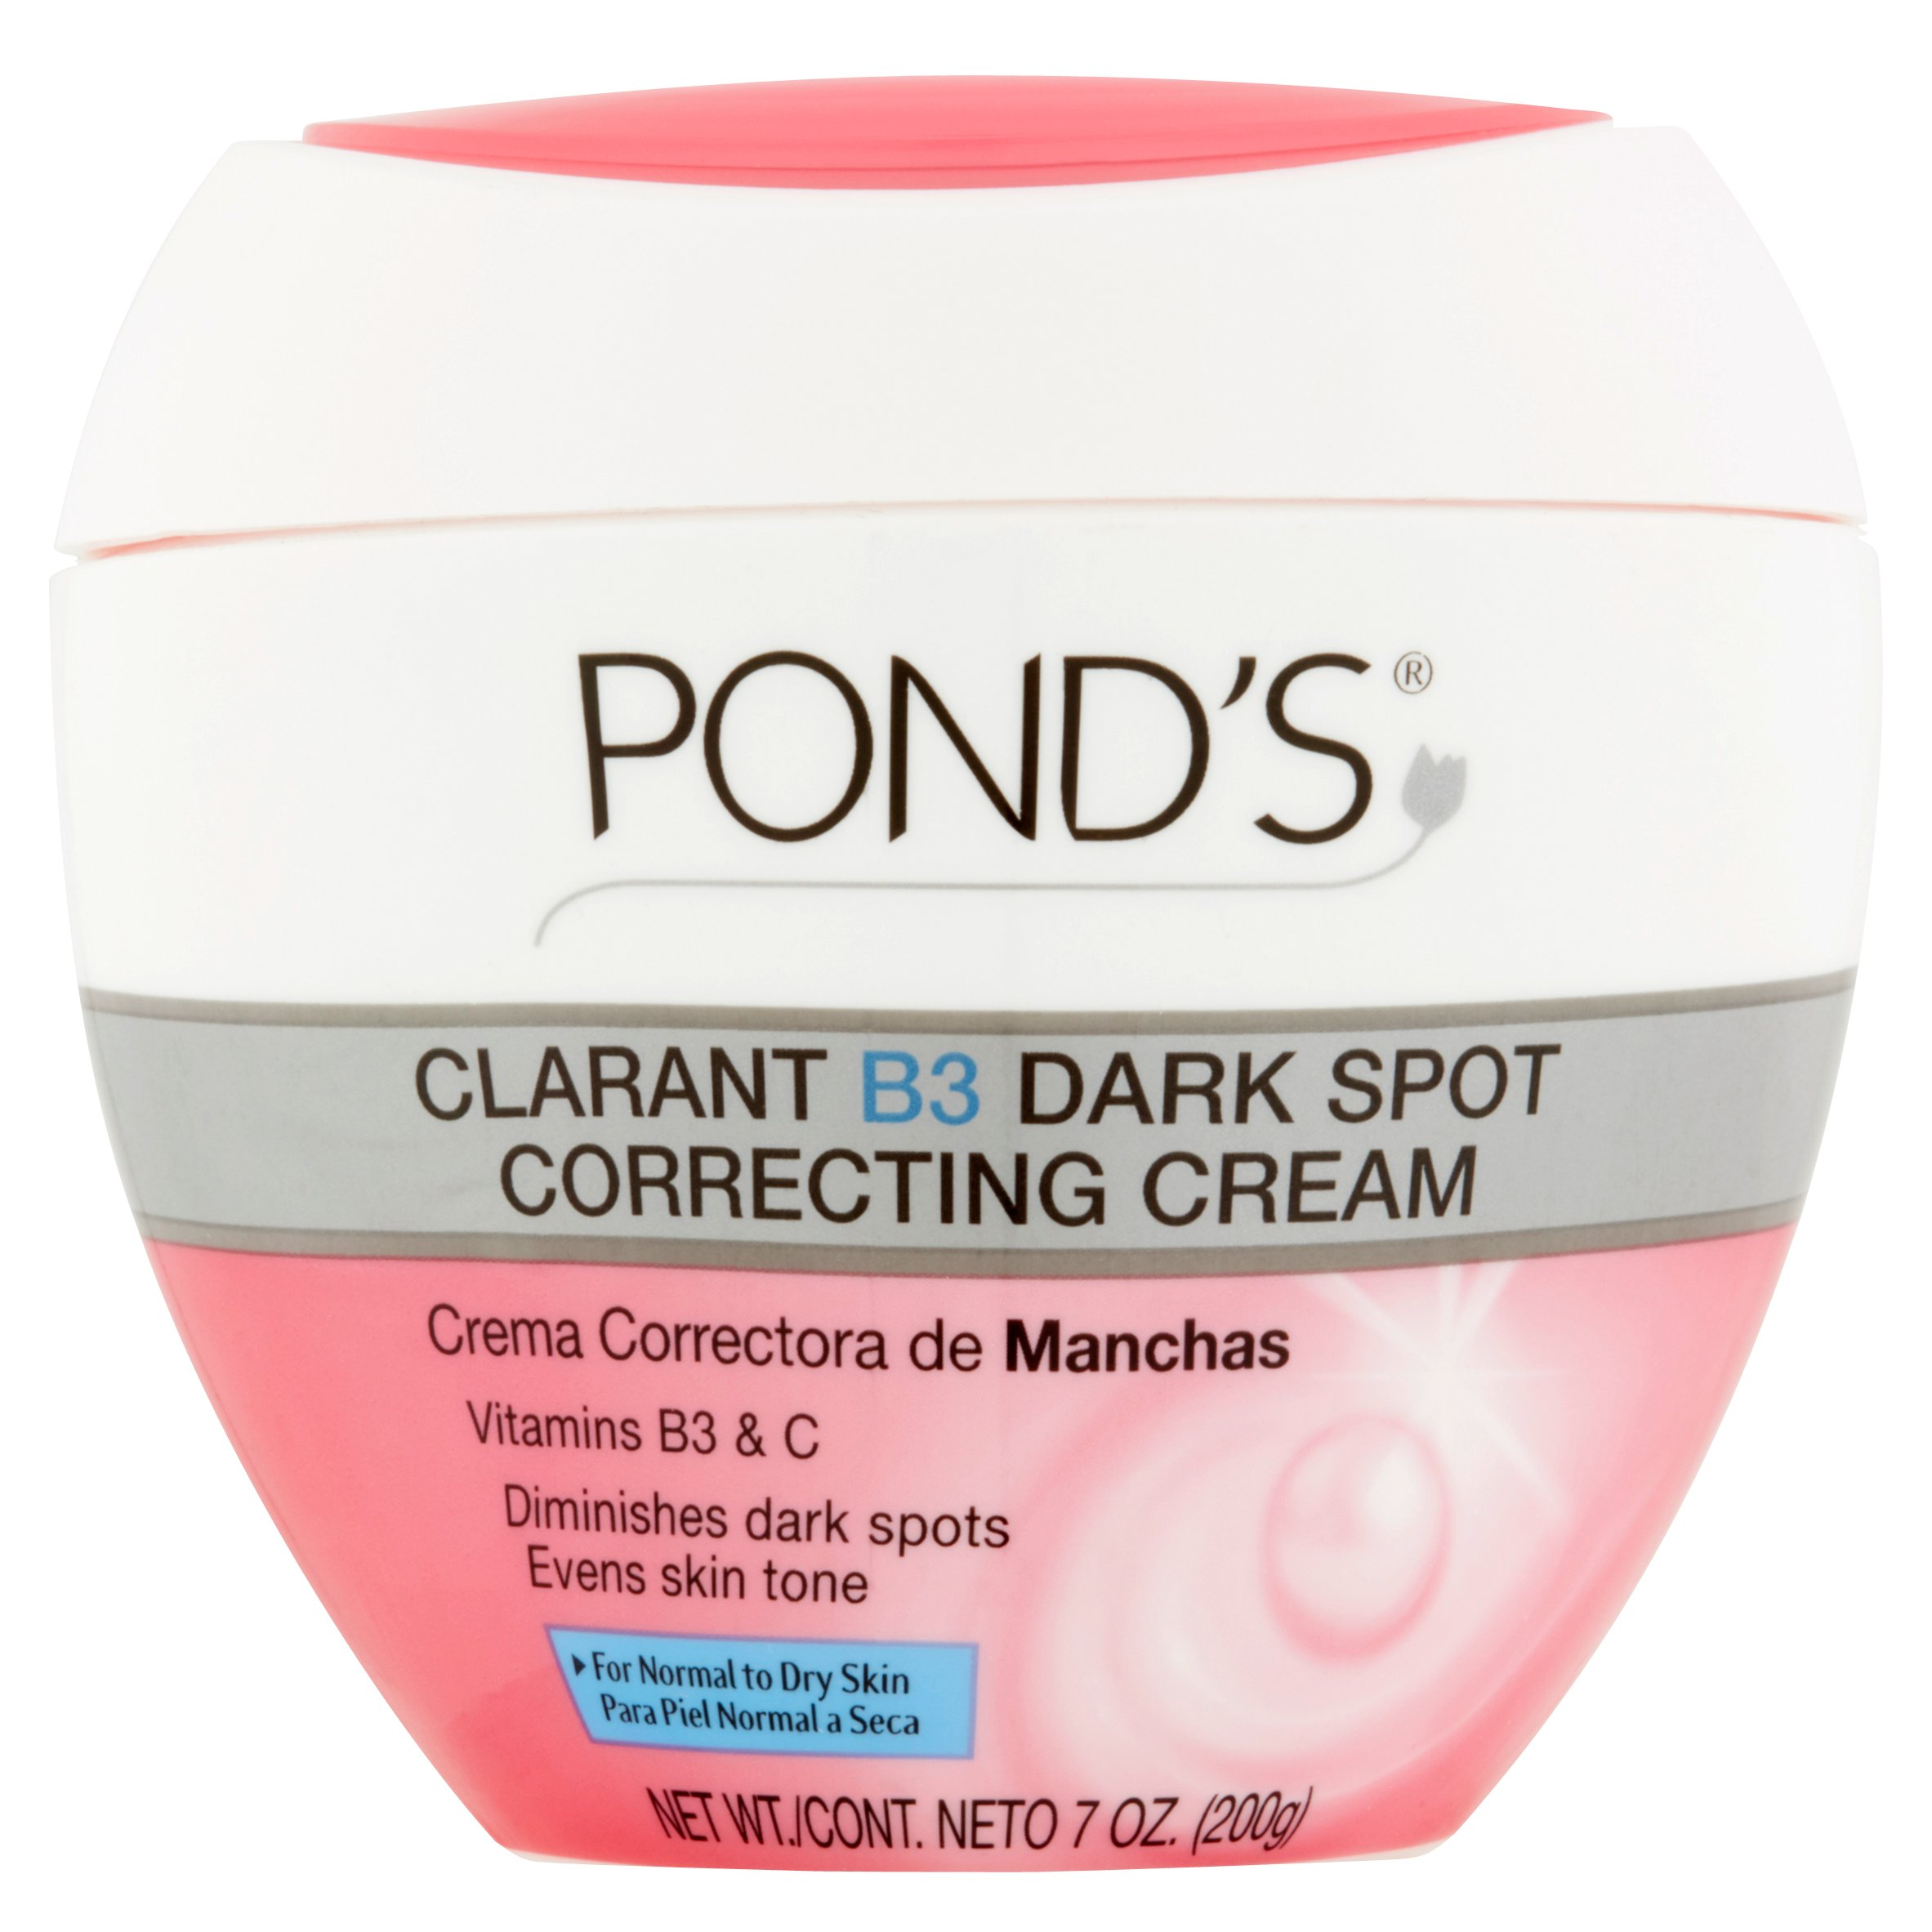 Pond's Correcting Cream Clarant B3 Dark Spot Normal to Dry Skin 7 oz